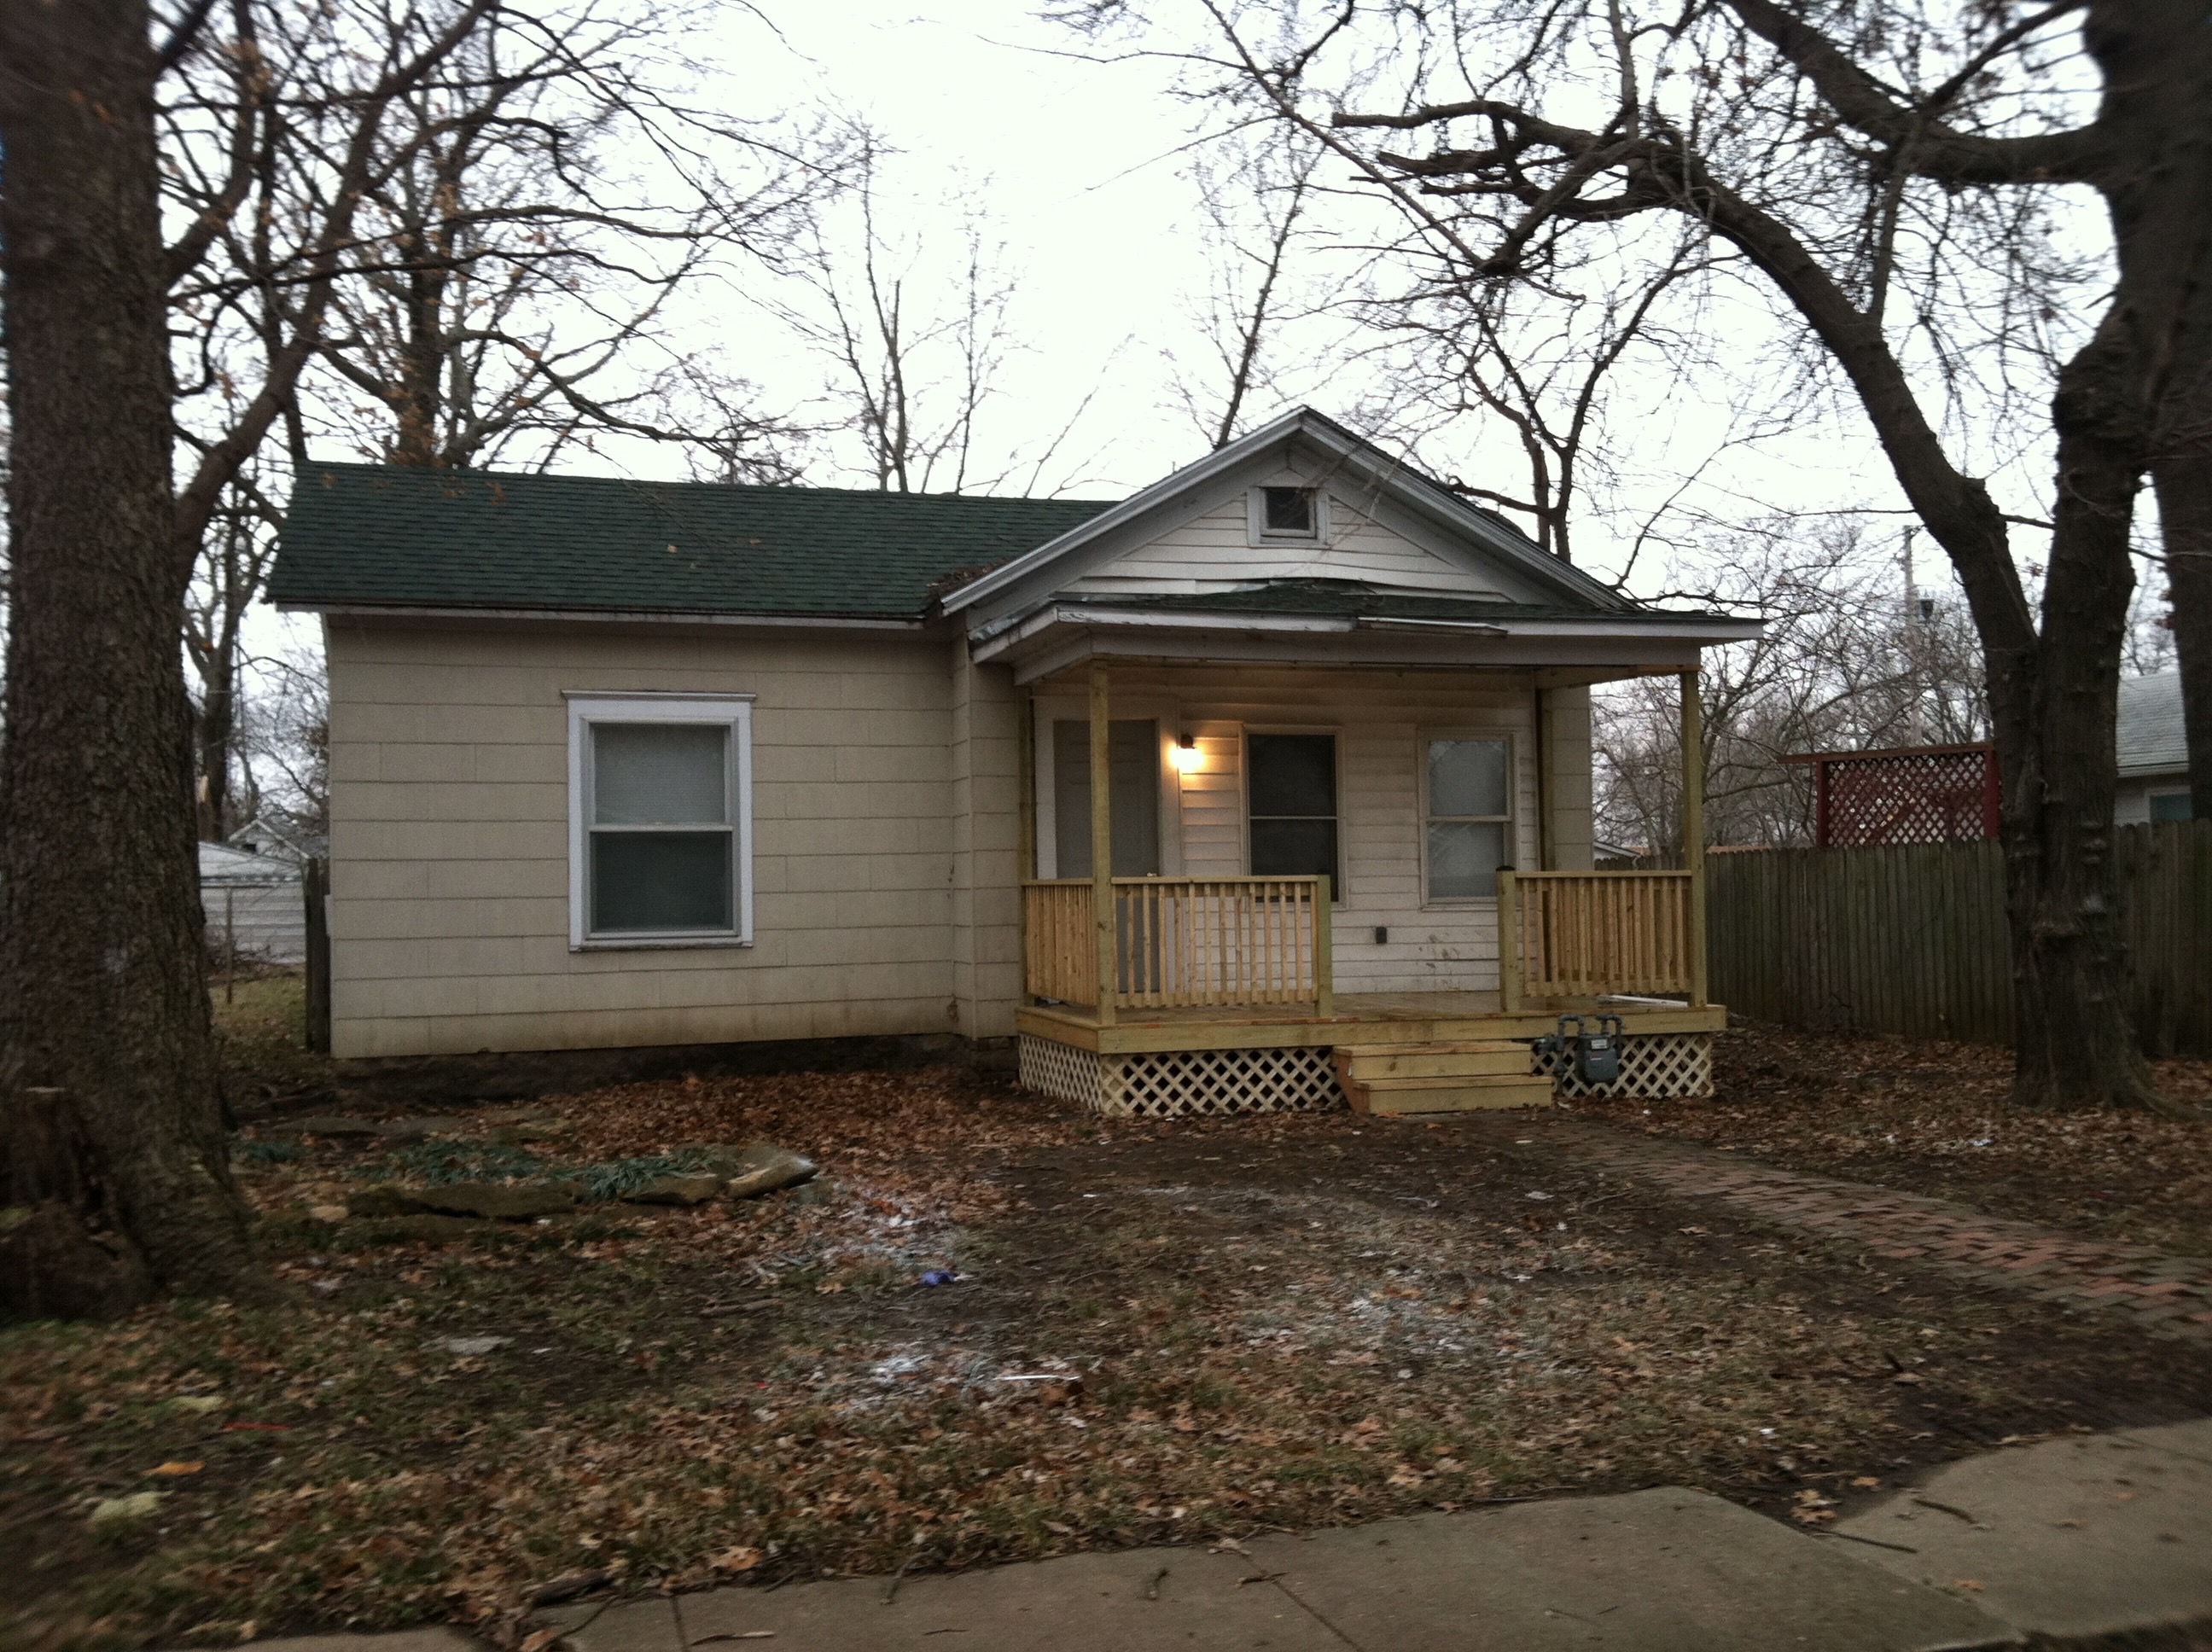 308 S Holbrook, Fort Scott, Bourbon County, Kansas, United States 66701, 2 Bedrooms Bedrooms, ,1 BathroomBathrooms,House,For Rent,S Holbrook,1,1001